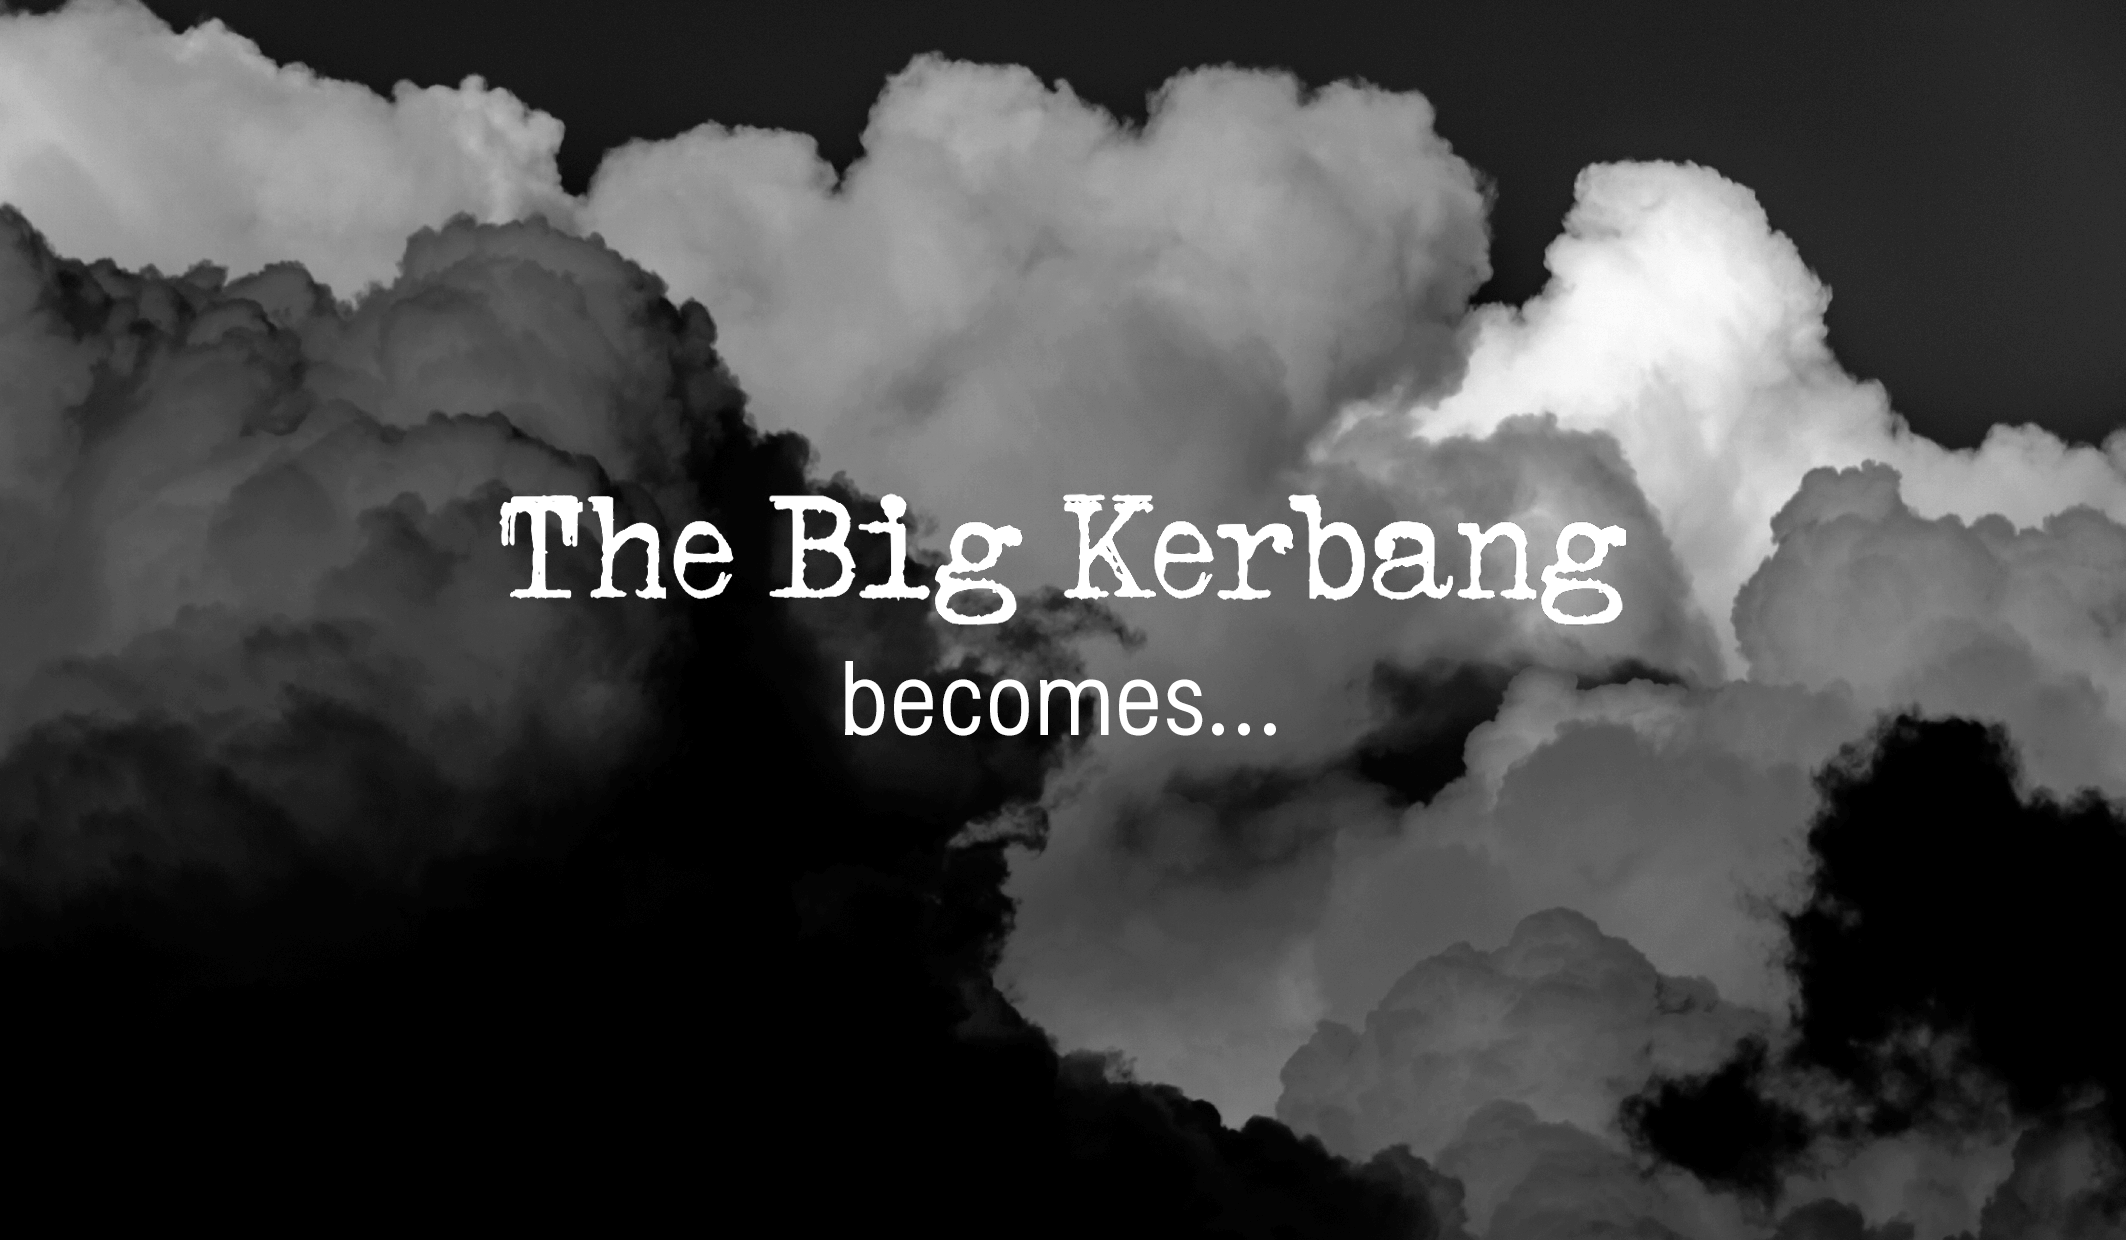 The Big Kerbang becomes...